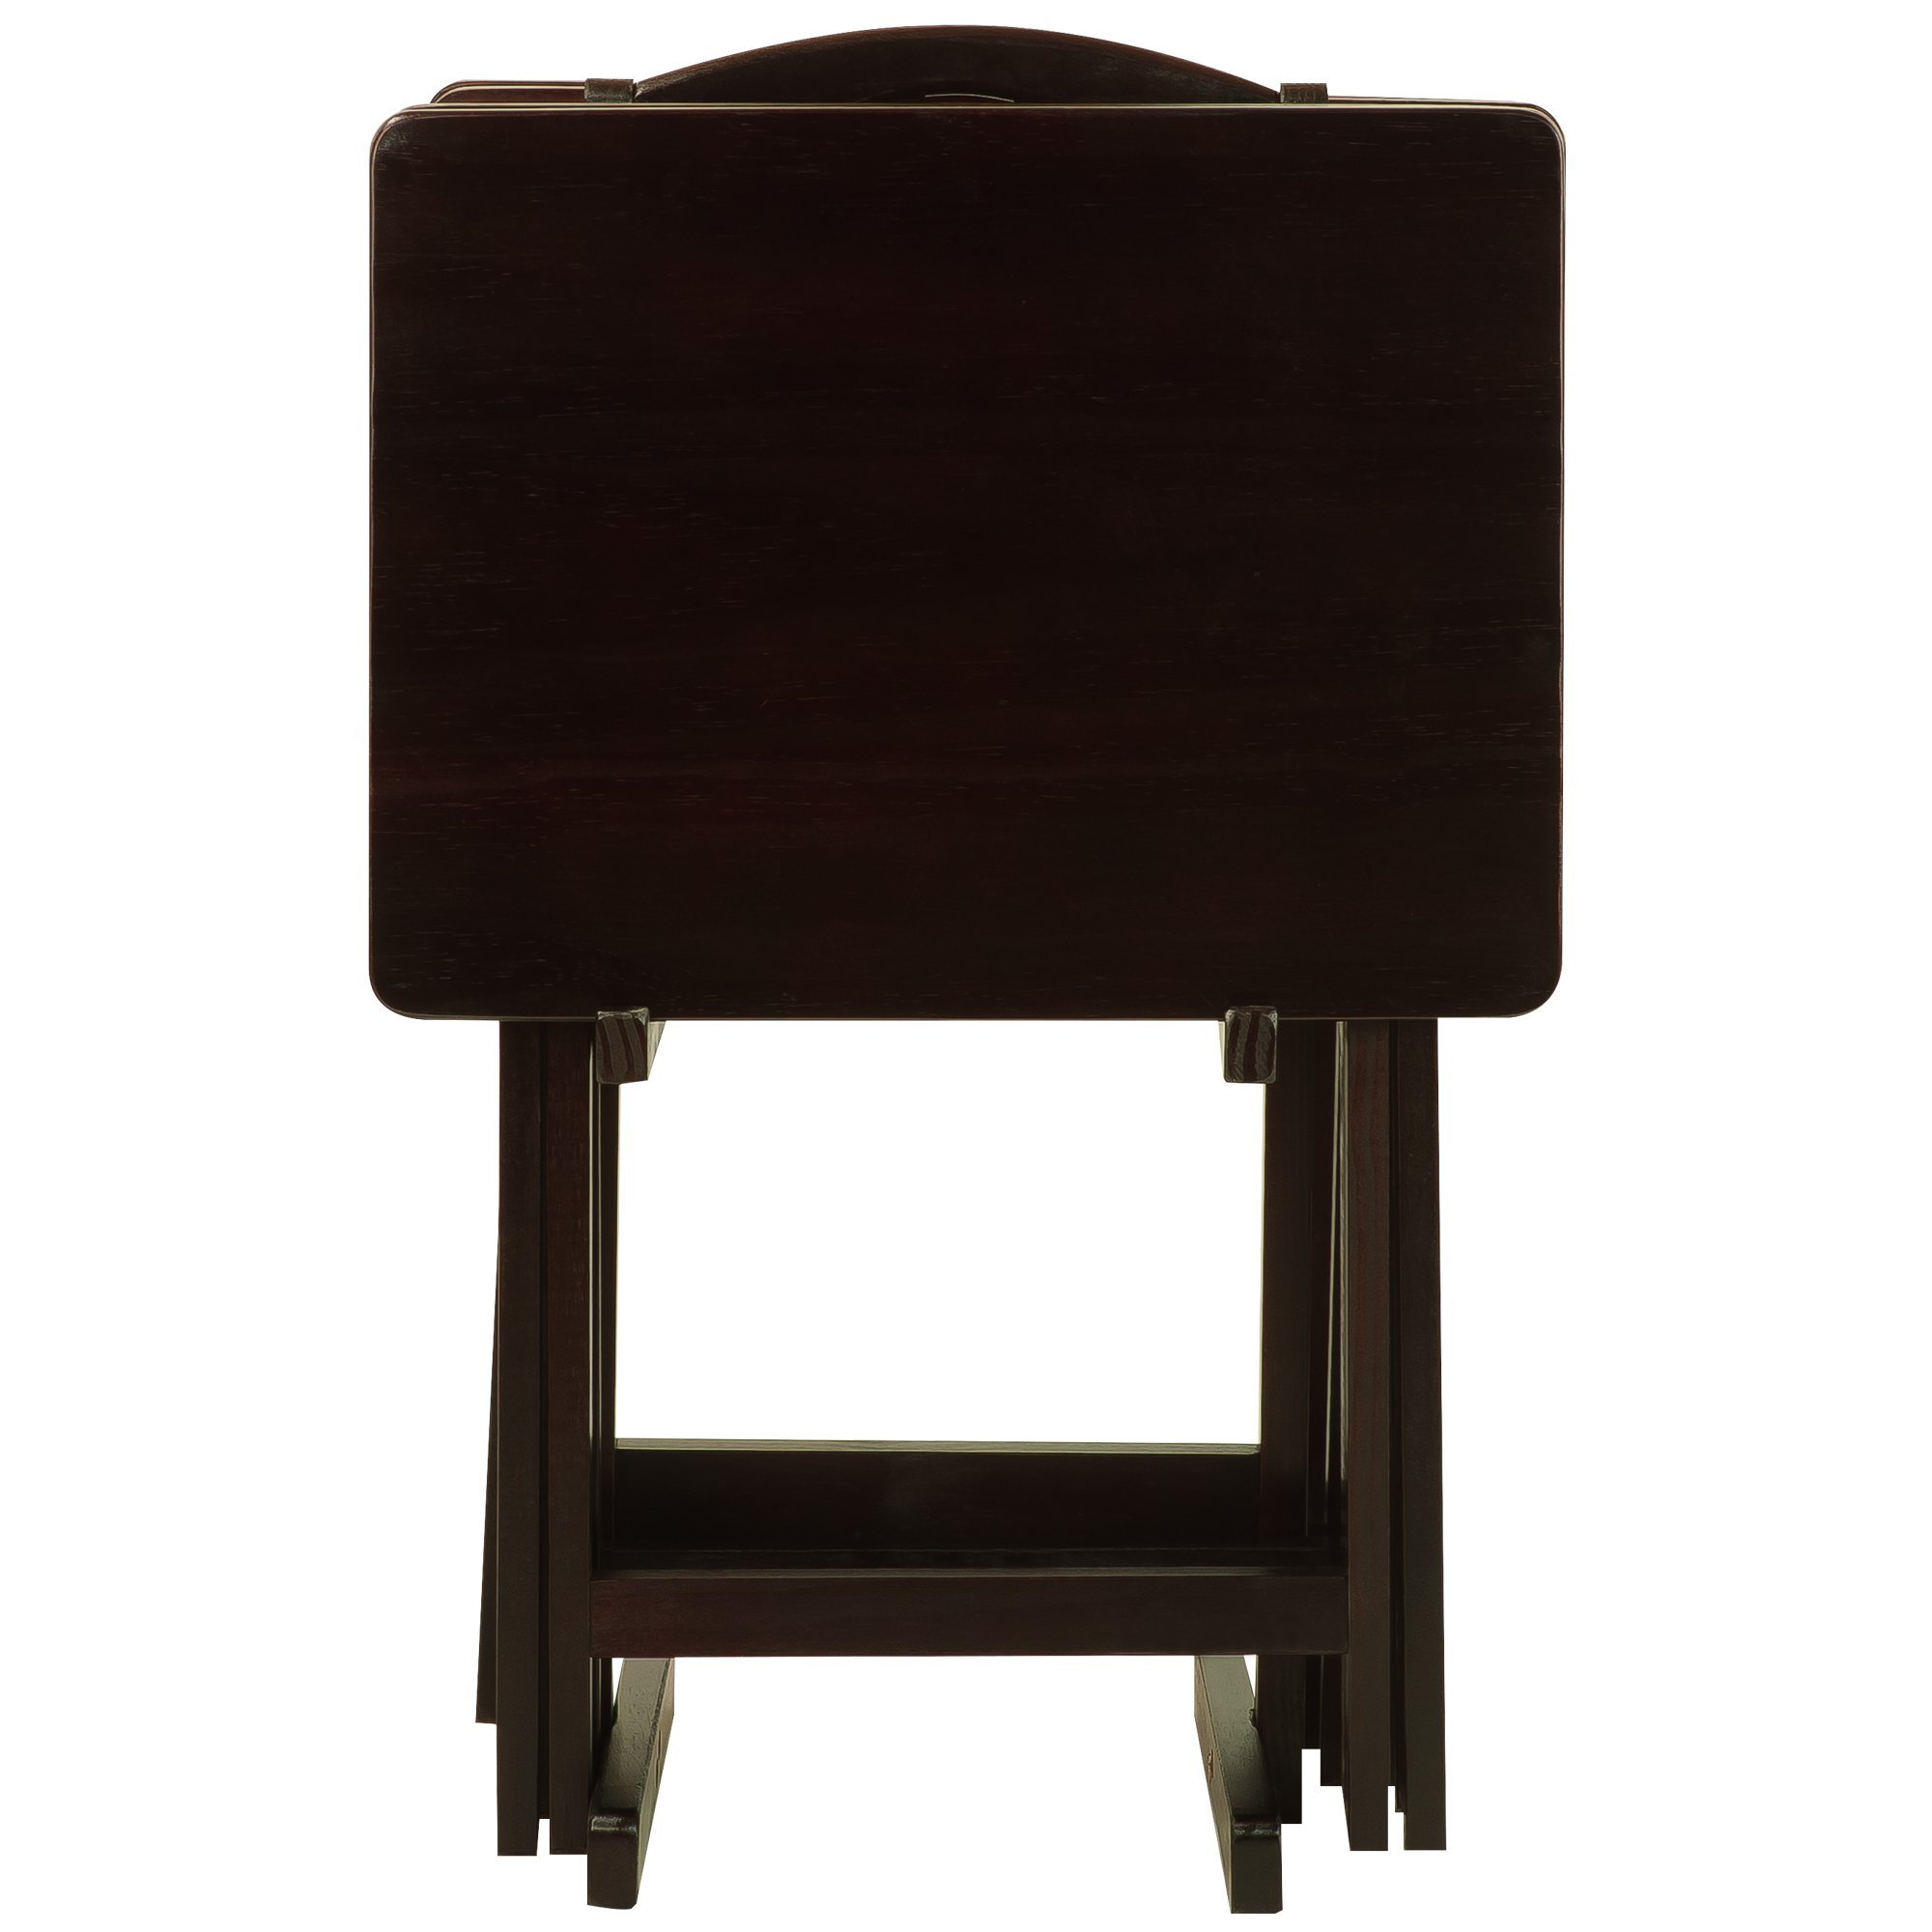 Casual Home 660-44 5-piece Tray Table Set-Espresso by Casual Home (Image #6)